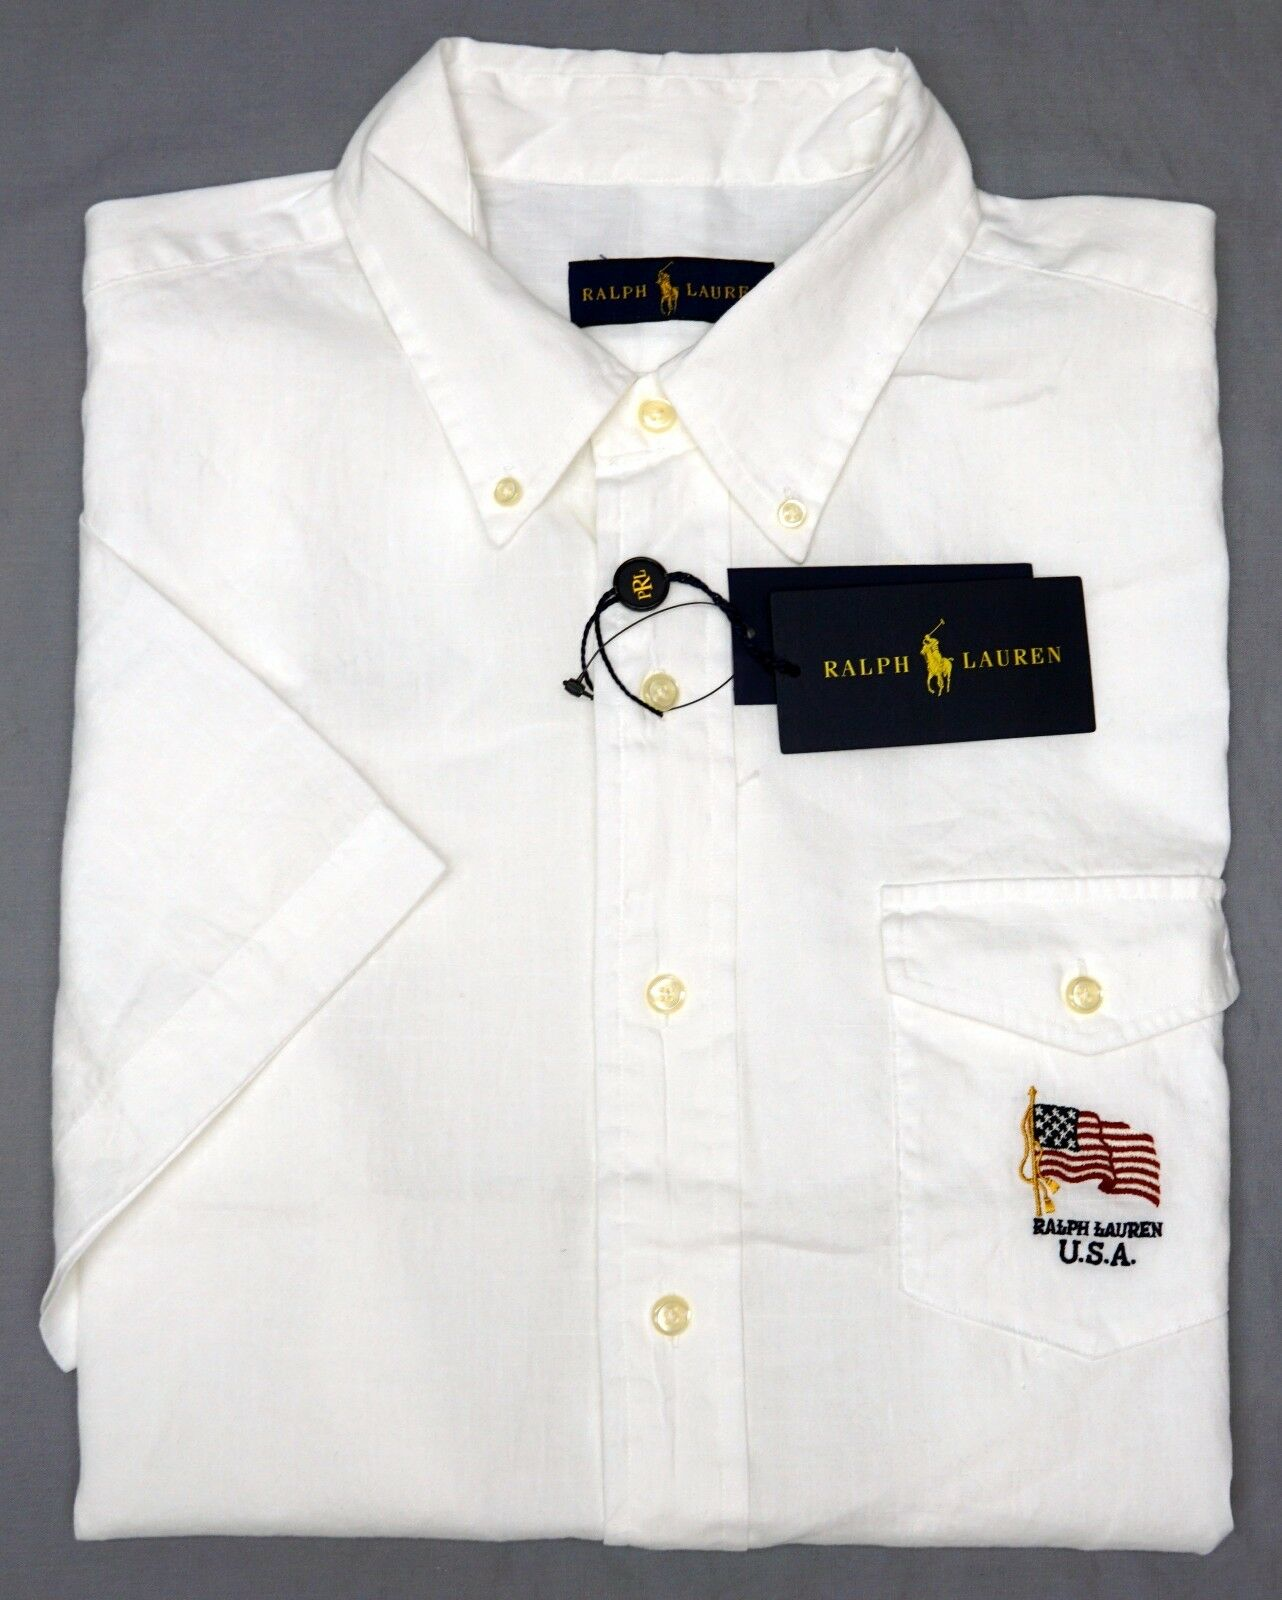 5821412e4f NWT Polo Ralph Lauren White Shirt Mens Linen Cotton Flag Short Sleeve NEW